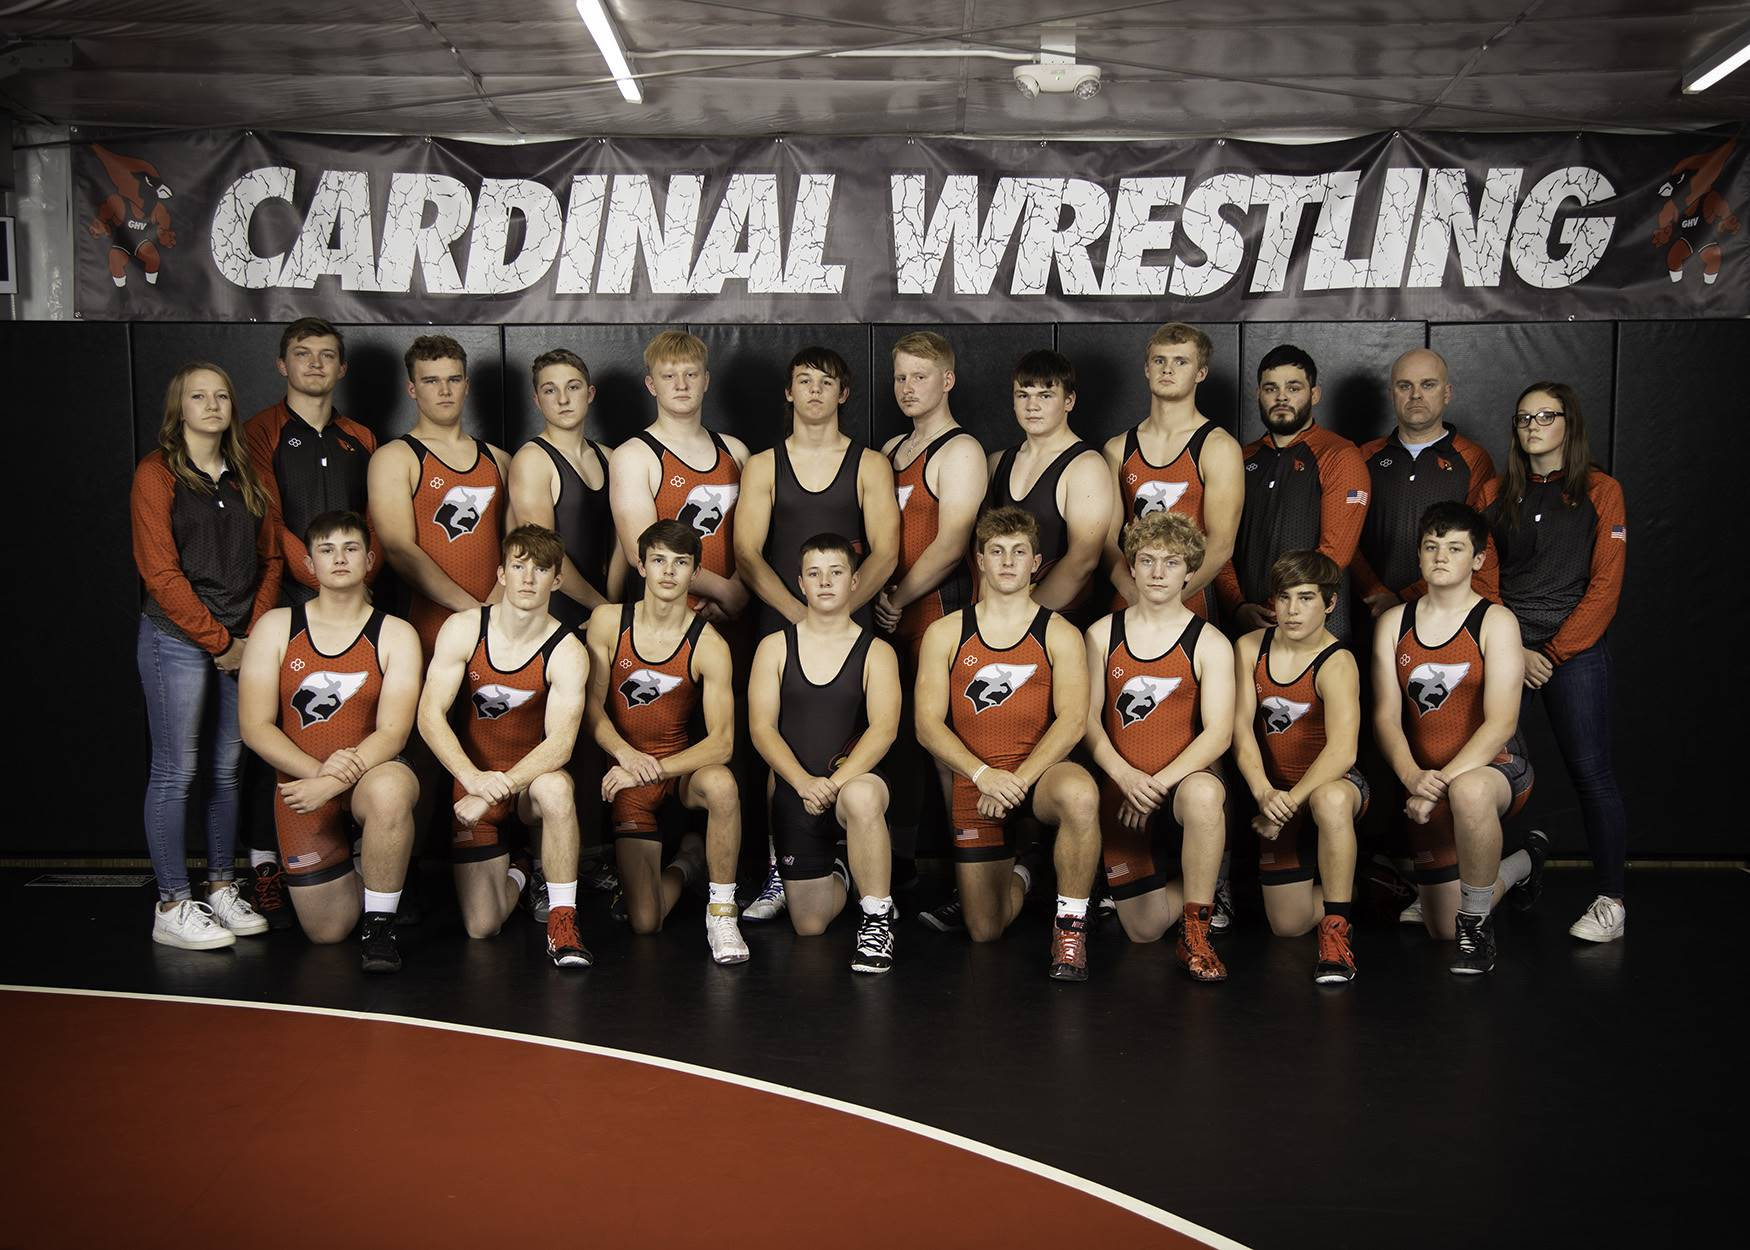 Wrestling team posing for a photo